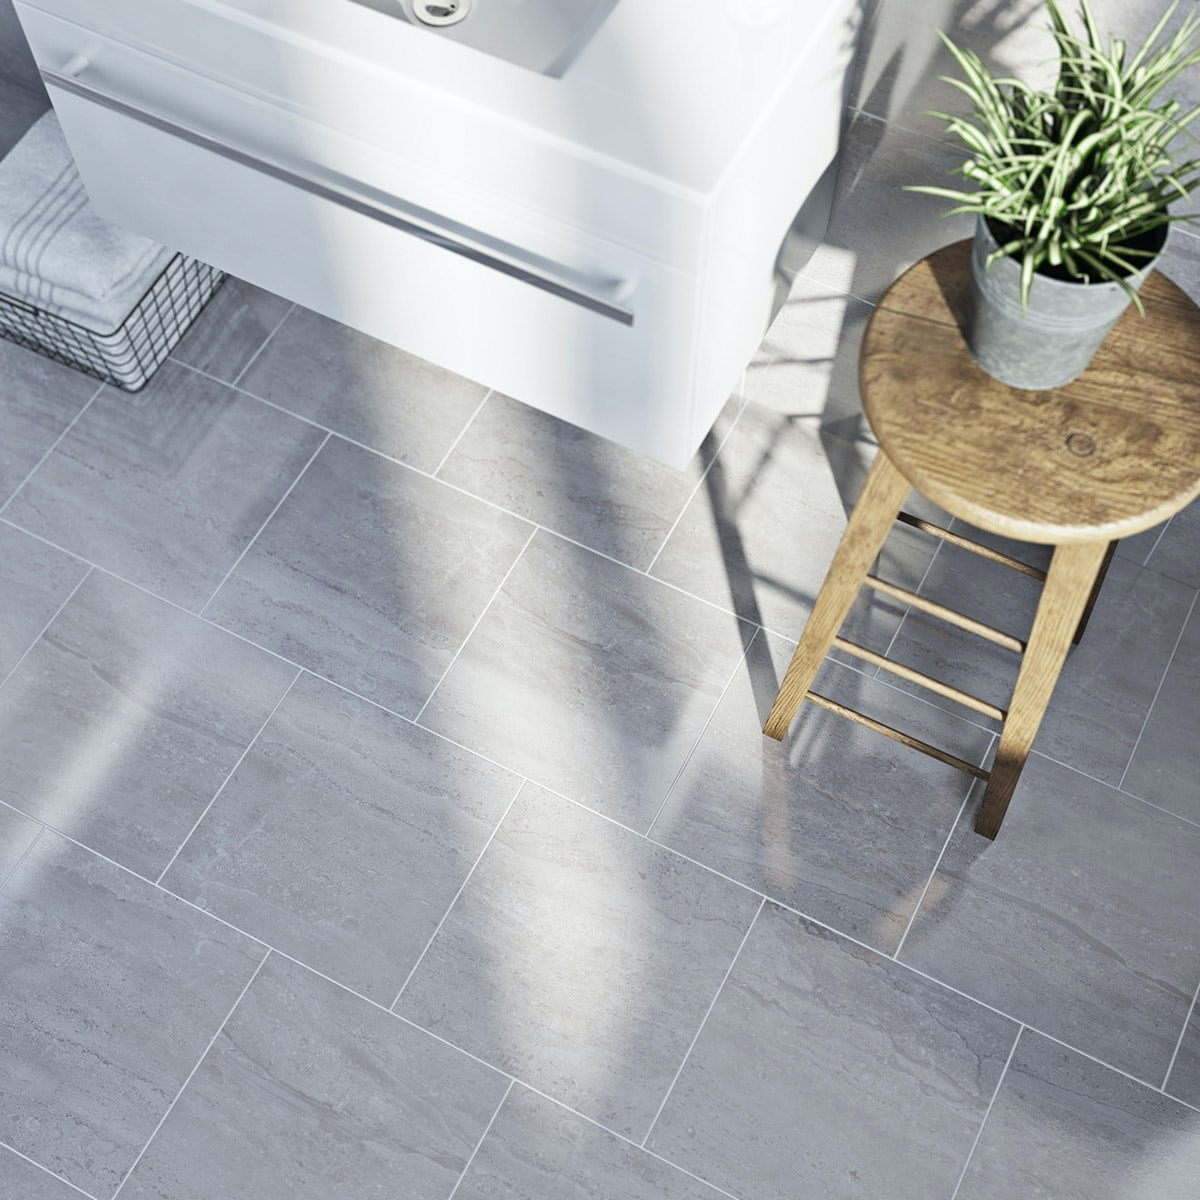 British Ceramic Tile Lux Dove Grey Gloss Tile 331mm X